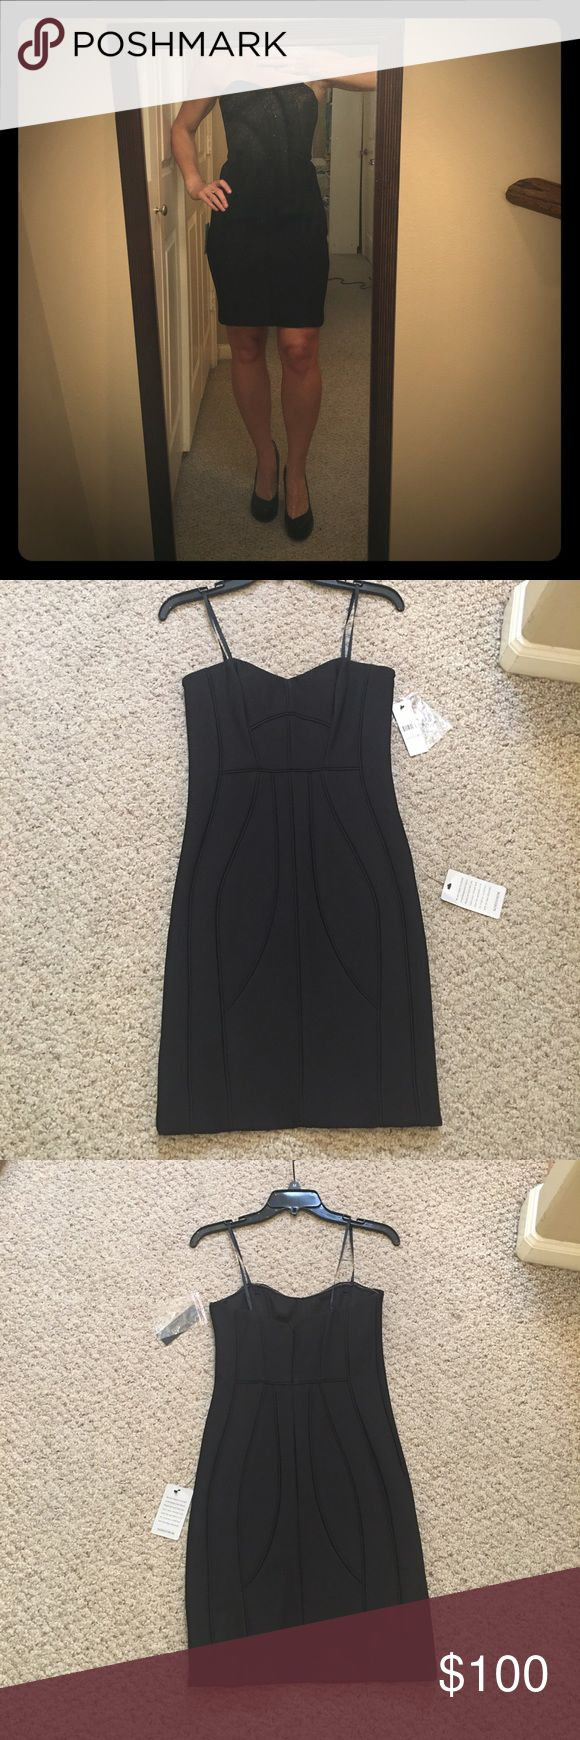 LAUNDRY by SHELLI SEGAL COCKTAIL DRESS Laundry by Shelli Segal black cocktail dress with corset like design.  Your new LBD!   THIS DRESS HAS NEVER BEEN WORN! Laundry by Shelli Segal Dresses Strapless